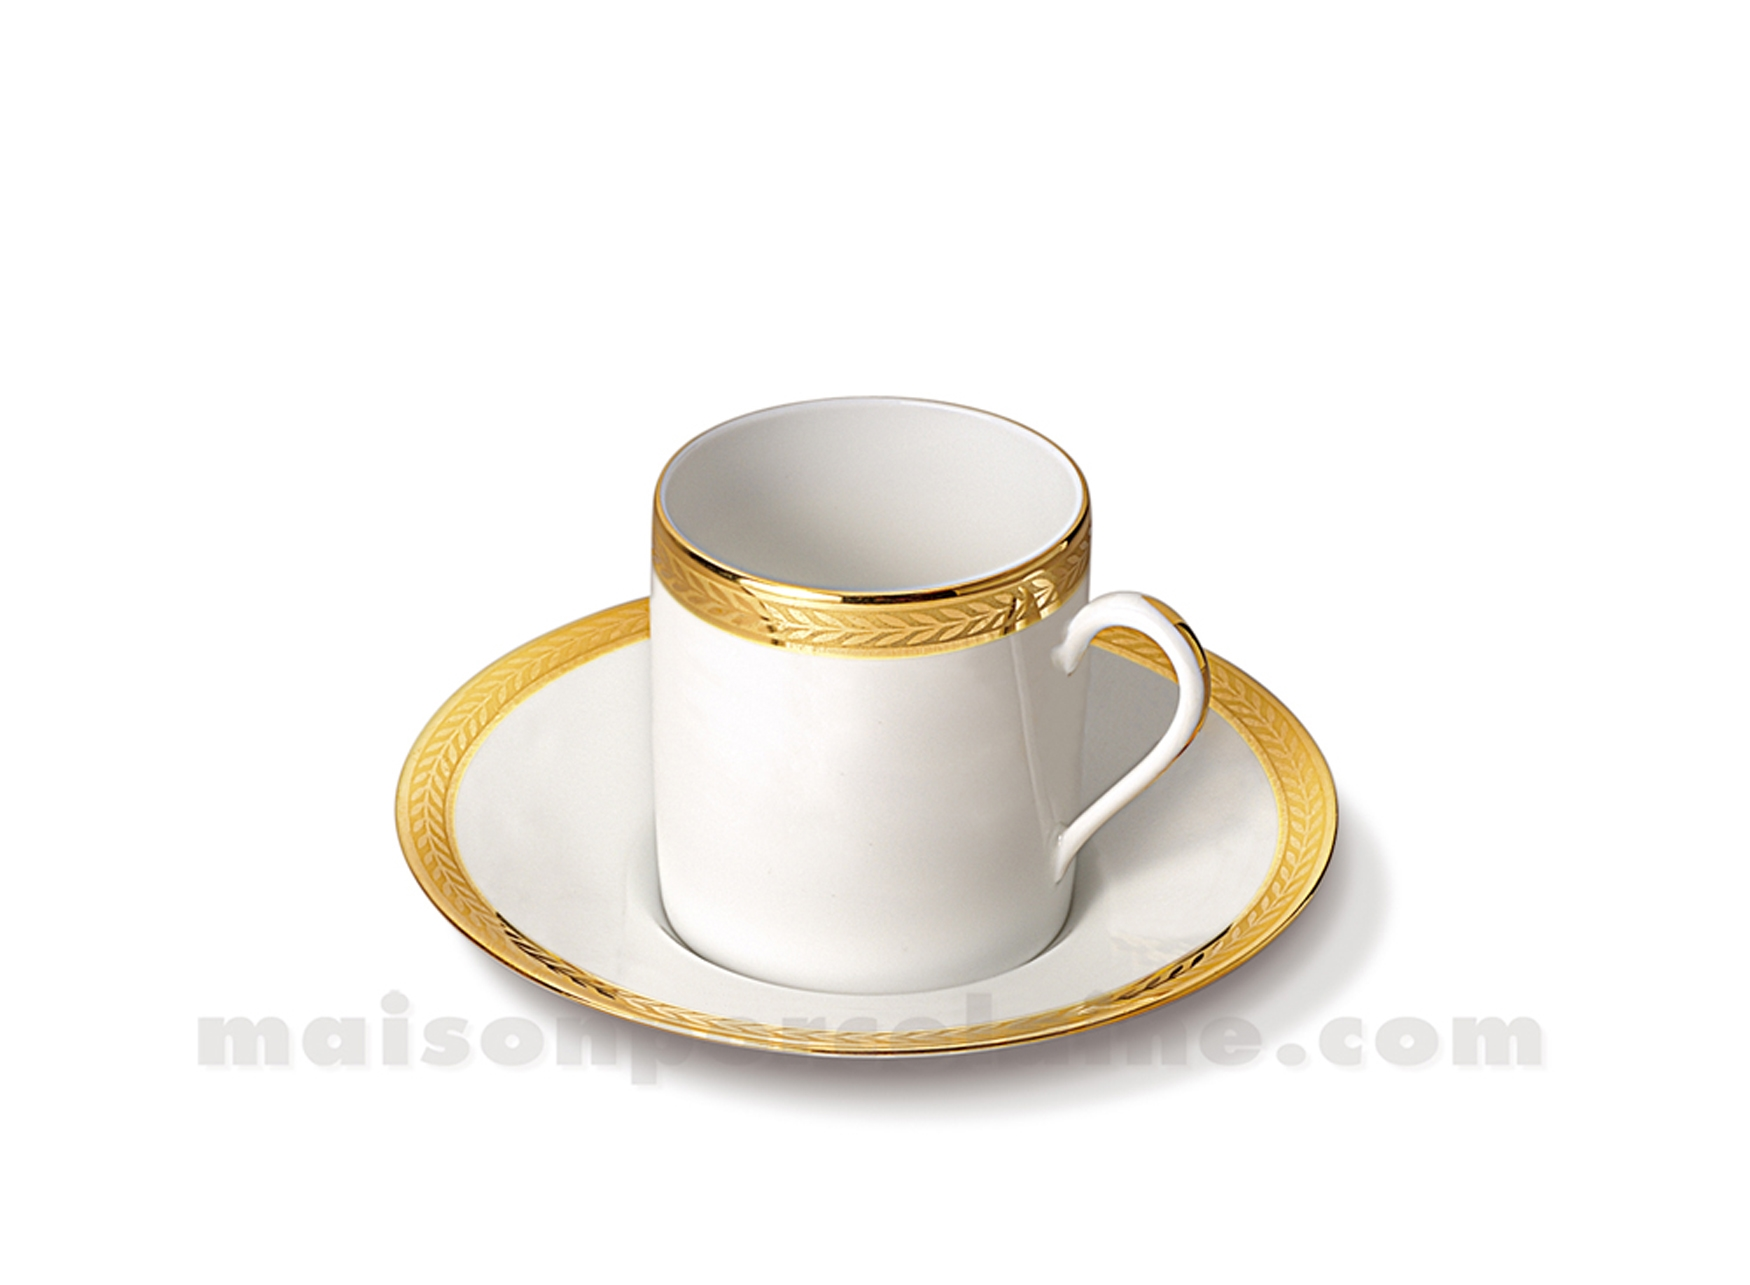 tasse cafe soucoupe limoges empire 10cl maison de la porcelaine. Black Bedroom Furniture Sets. Home Design Ideas